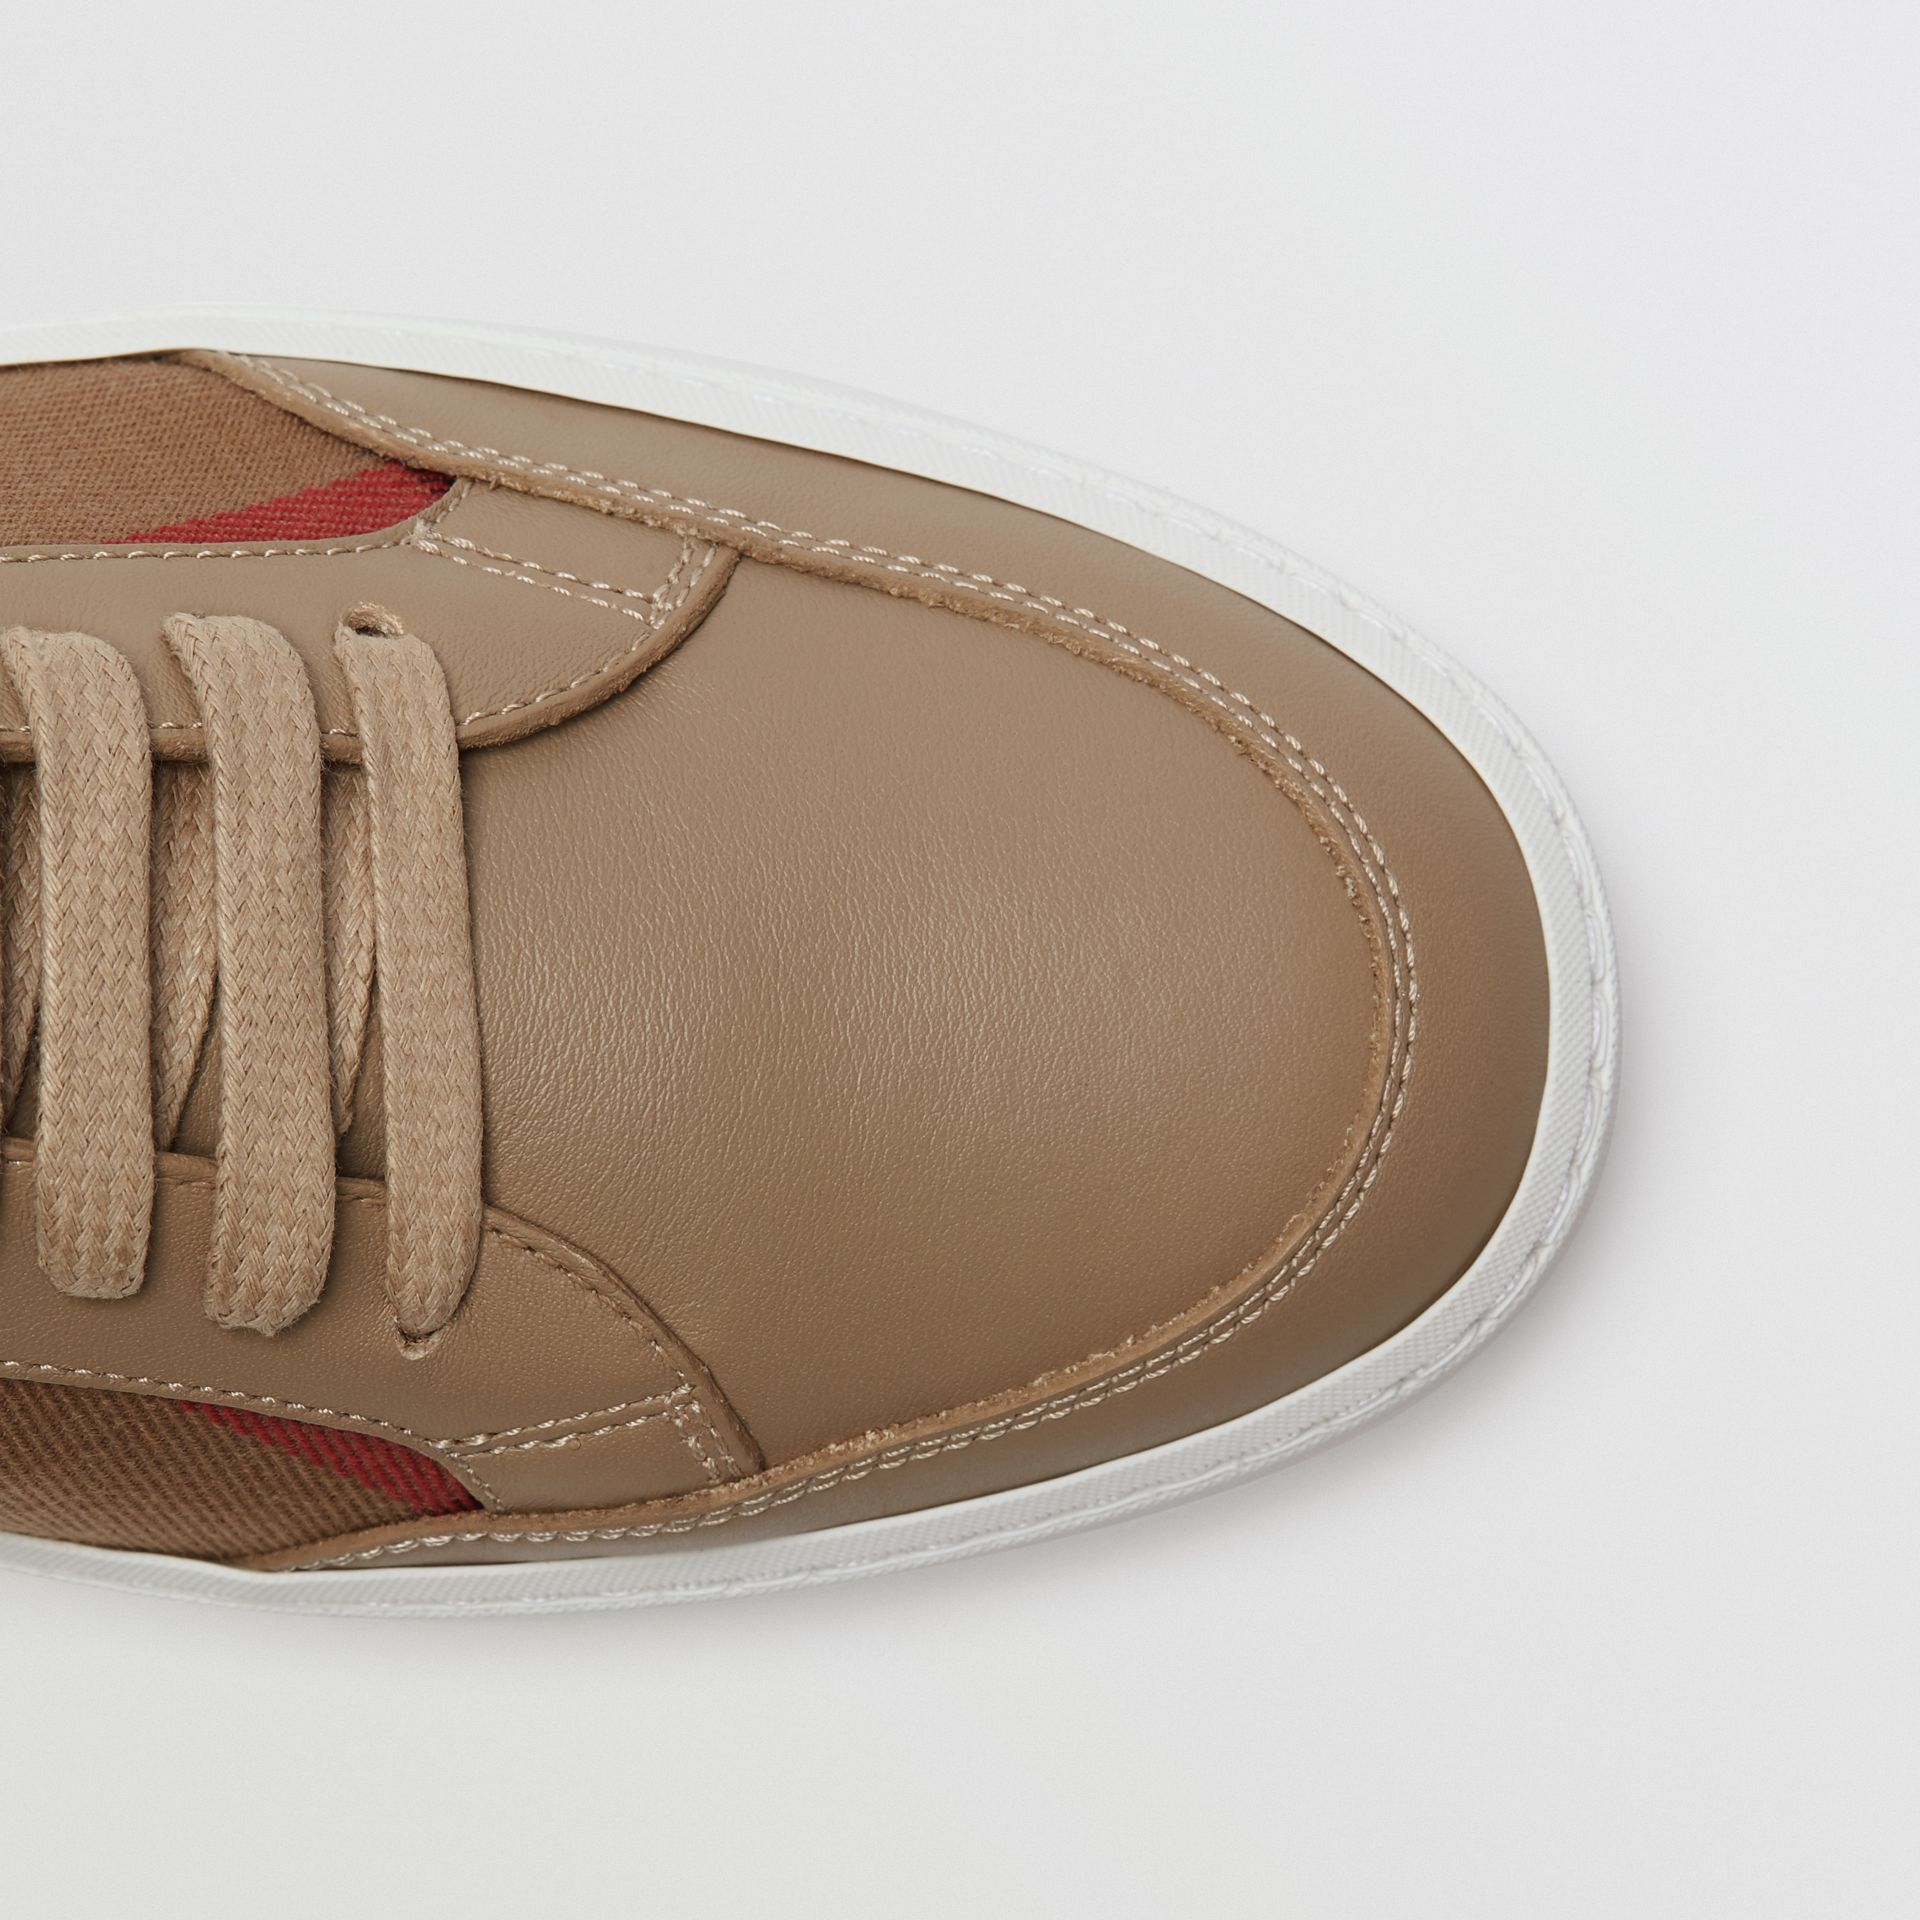 Check Detail Leather Sneakers in House Check/ Nude - Women | Burberry Hong Kong S.A.R - gallery image 1